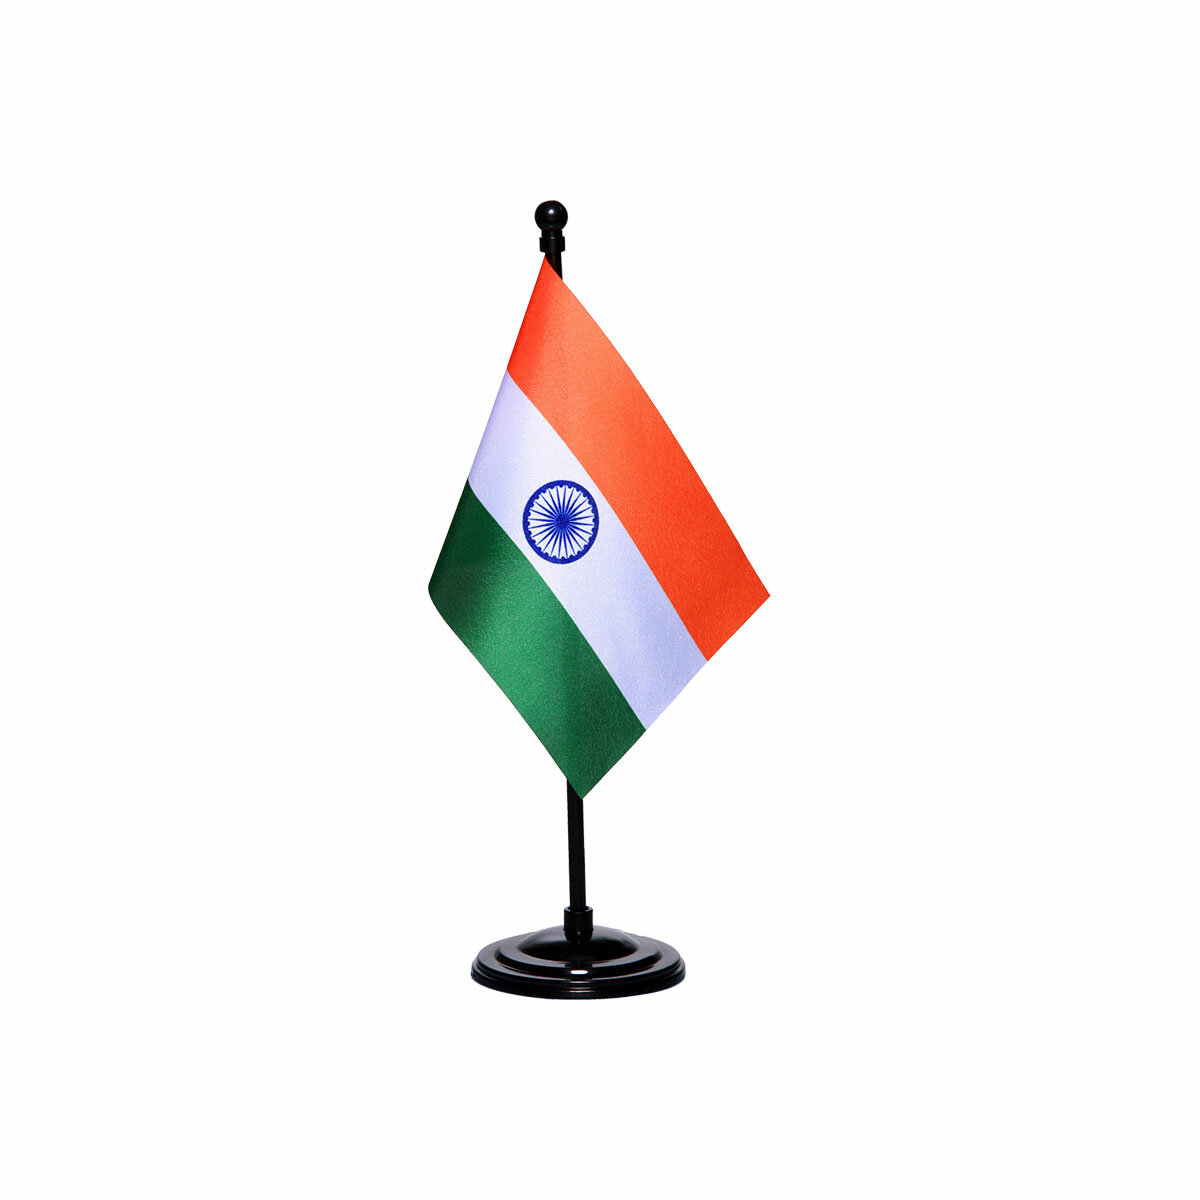 india table or desk flag with a black plastic stand / base